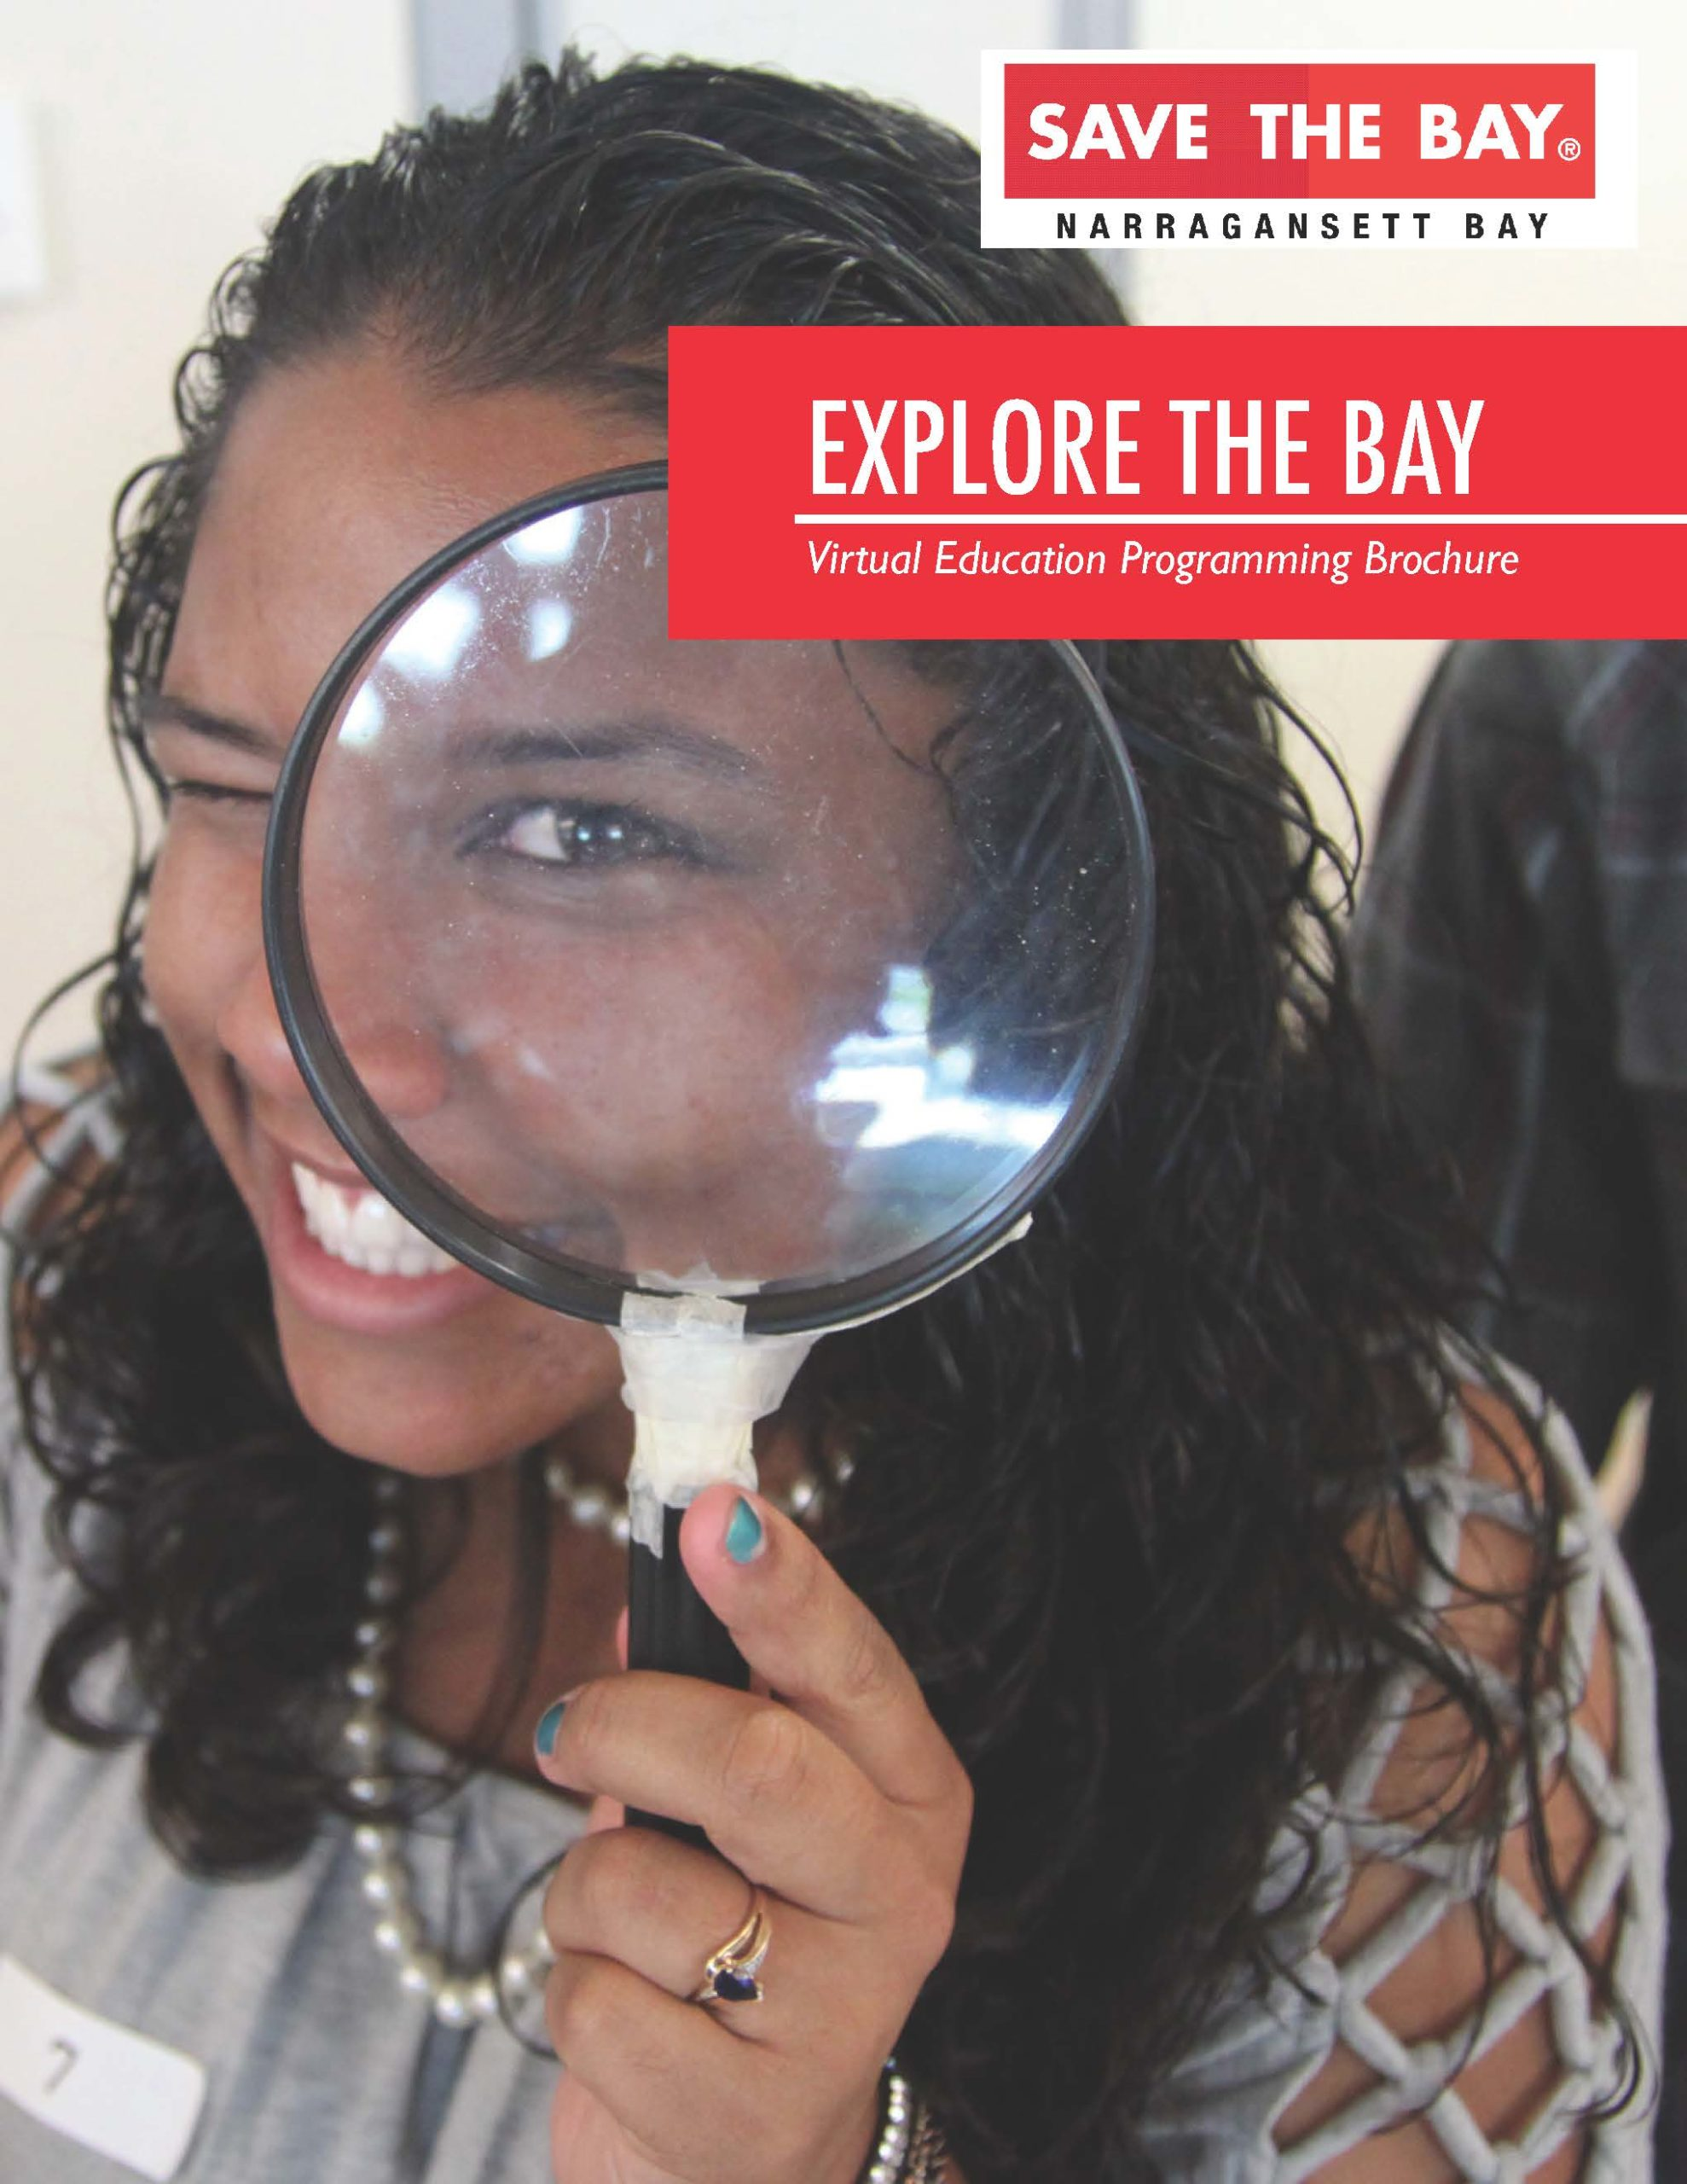 Explore the Bay with us... virtually!